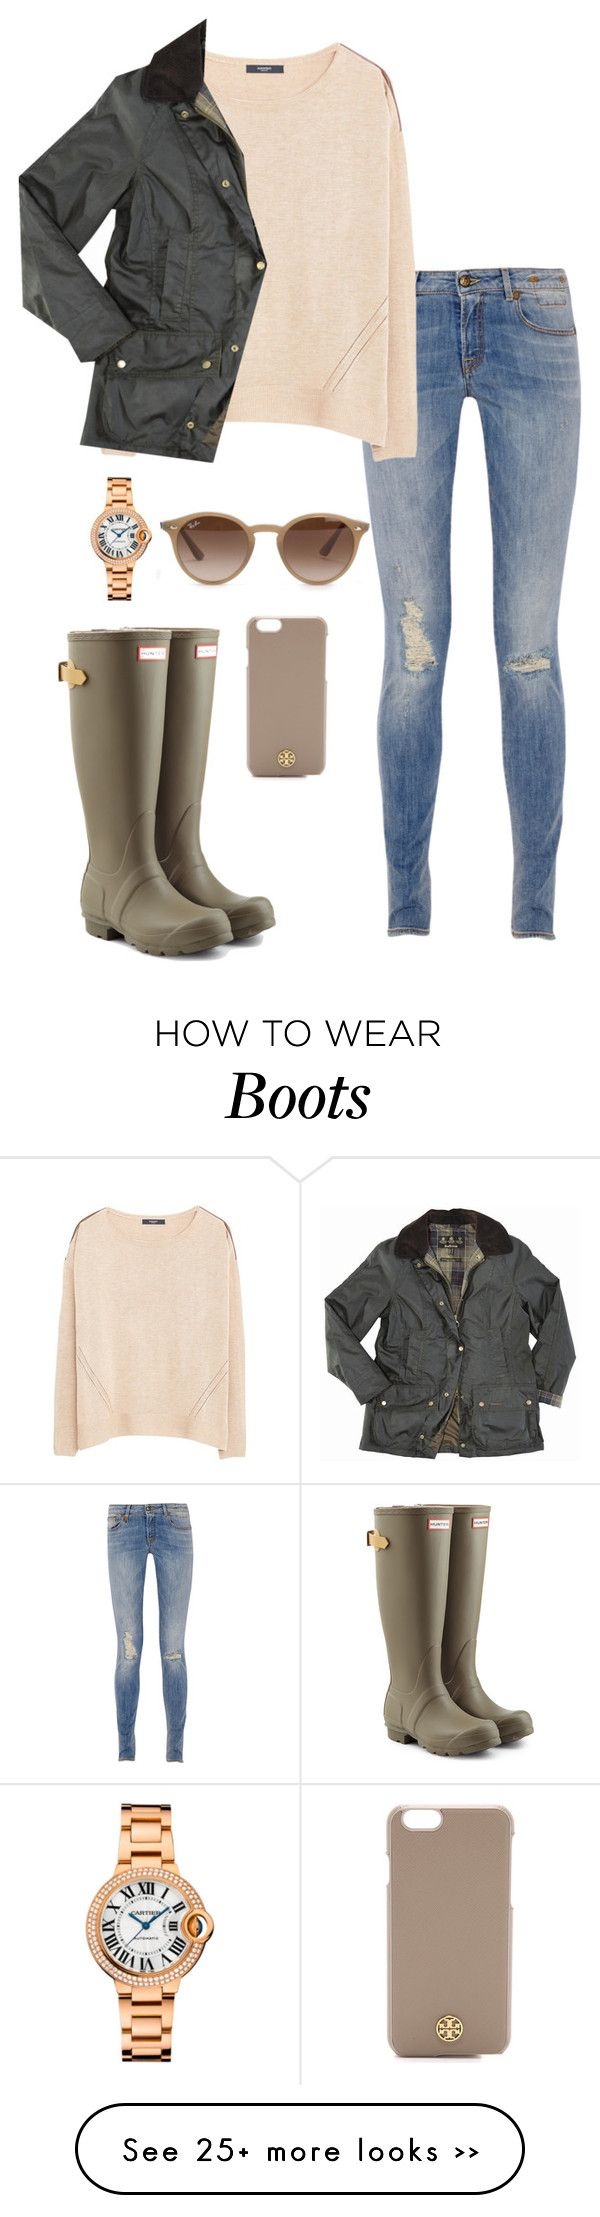 """hunter boots&barbor"" by kcunningham1 on Polyvore featuring R13, MANGO, Hunter, …"